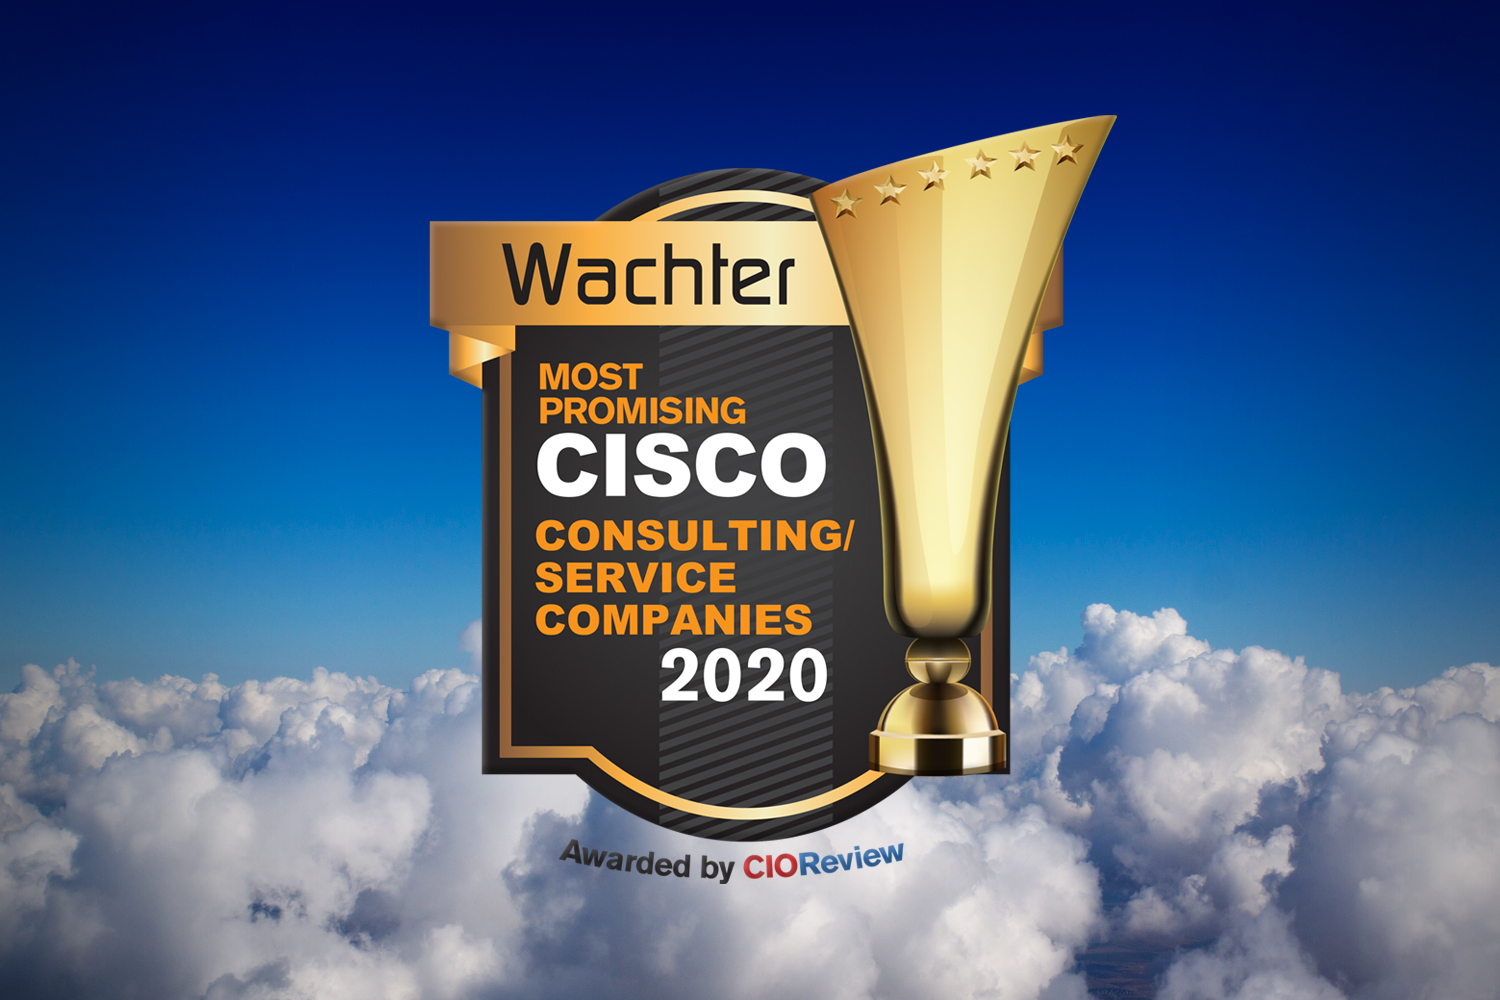 Wachter Shines as a Most Promising Cisco Consulting & Service Company